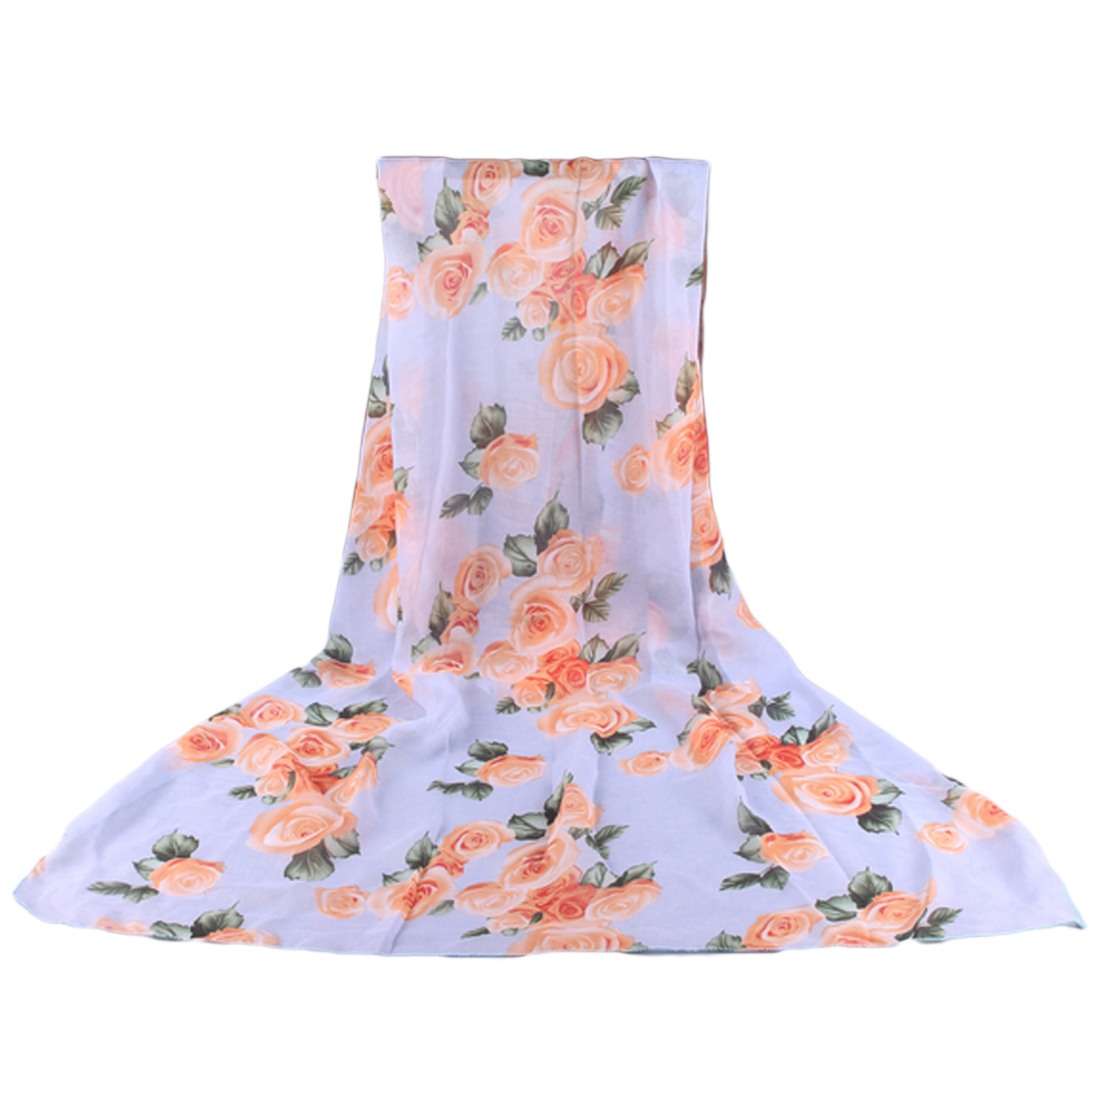 Charming Ladies 39 Lover Flower Rose Chiffon Scarf Chevron Infinity Scarves Women Shawl Beach Towel Female Long Summer Scarf in Women 39 s Scarves from Apparel Accessories